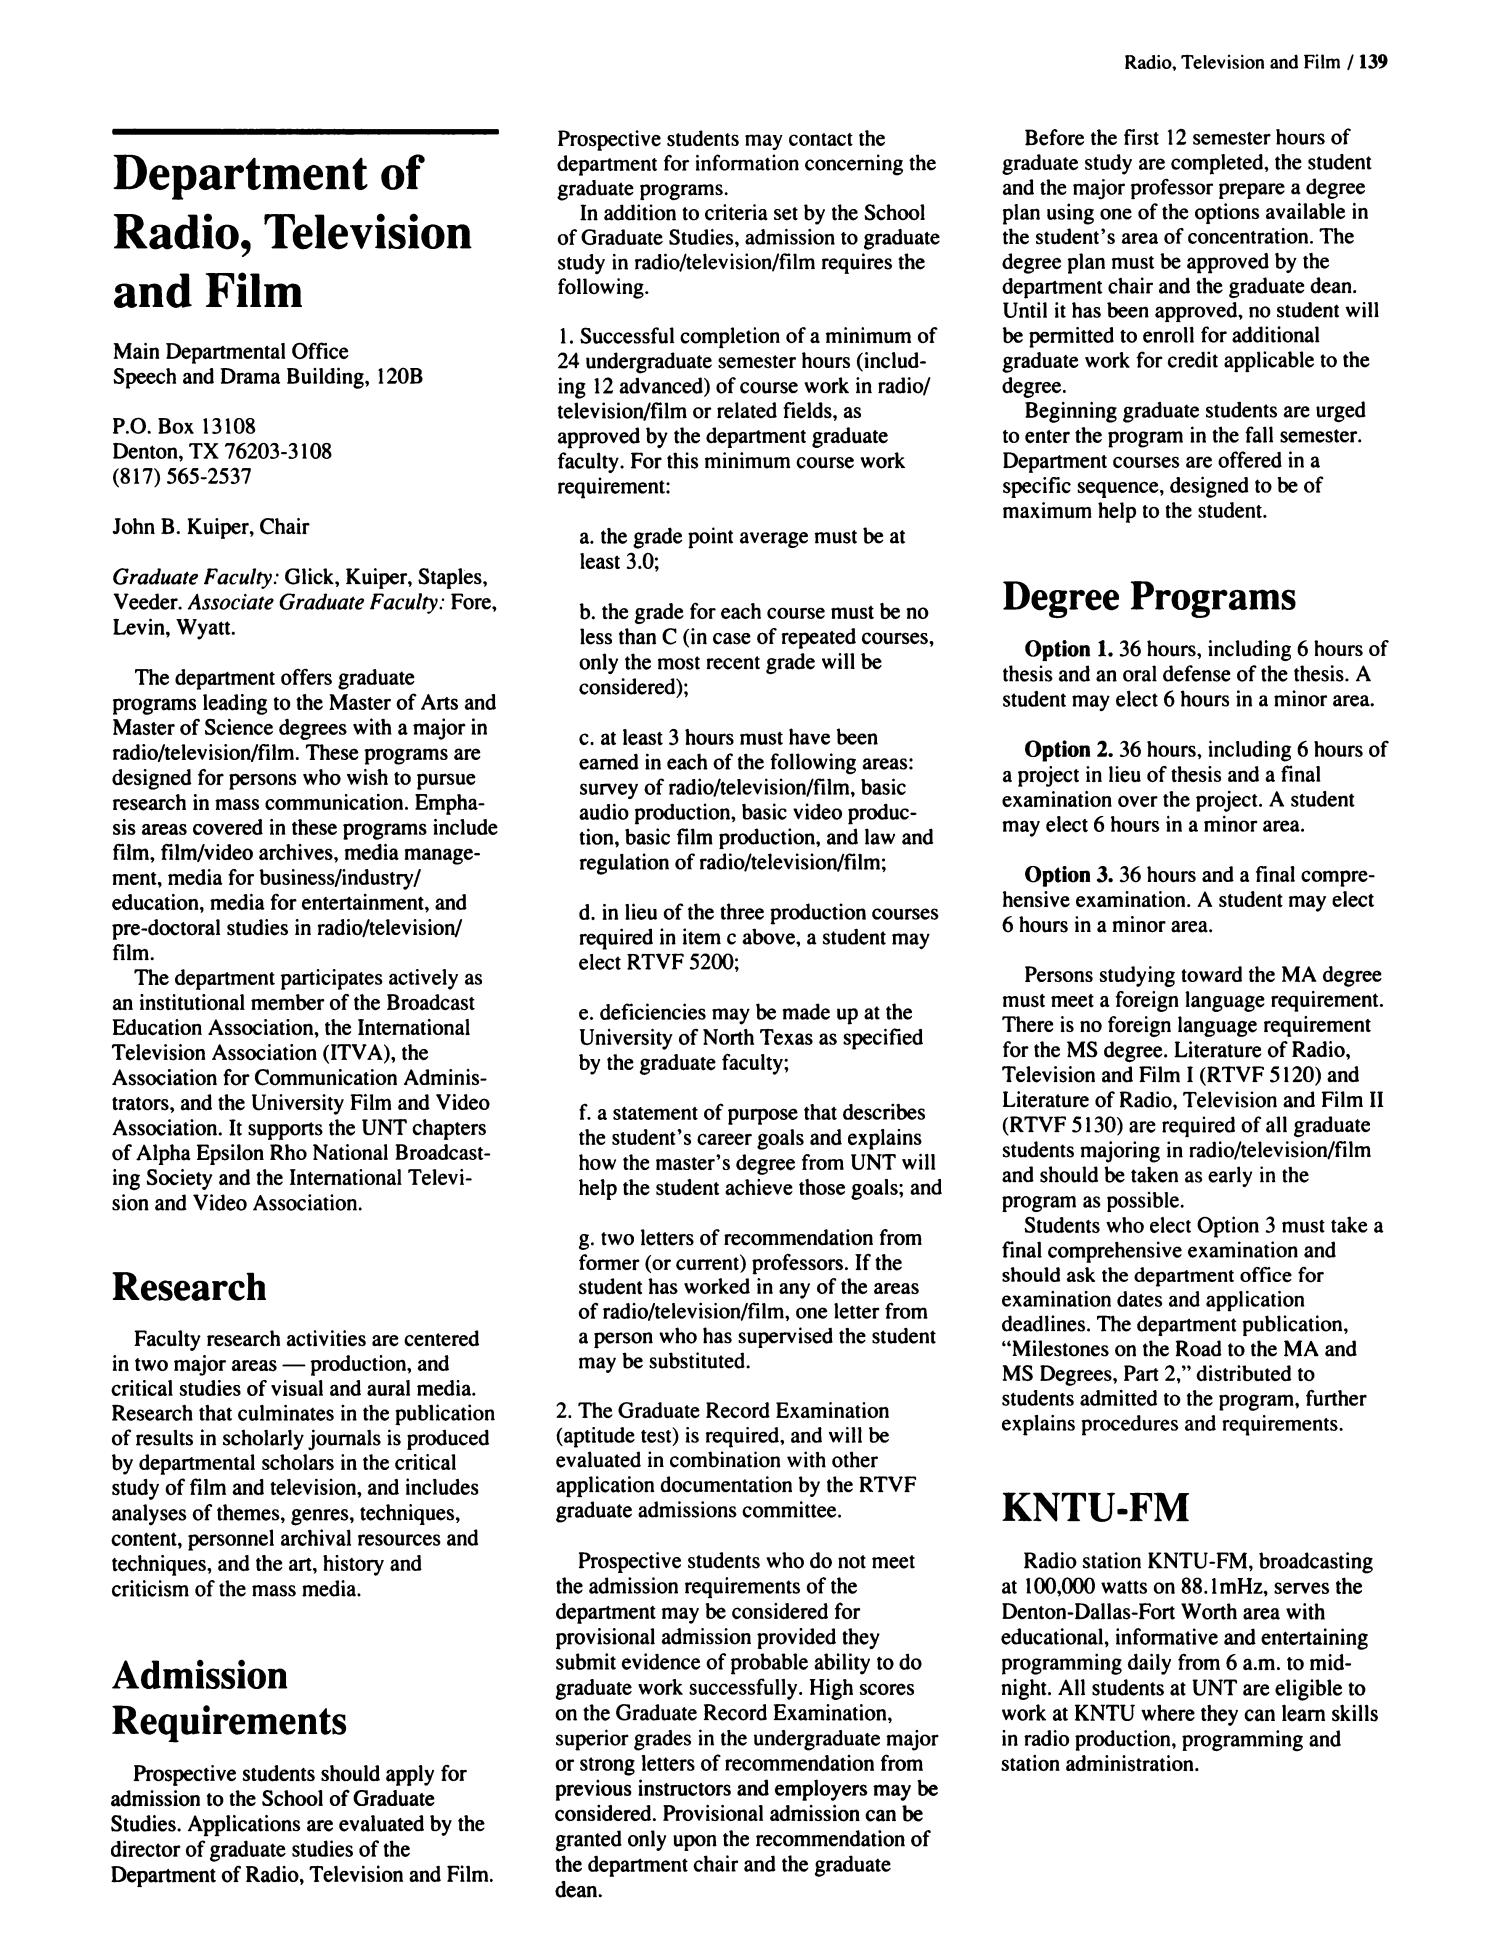 Catalog of the University of North Texas, 1992-1993